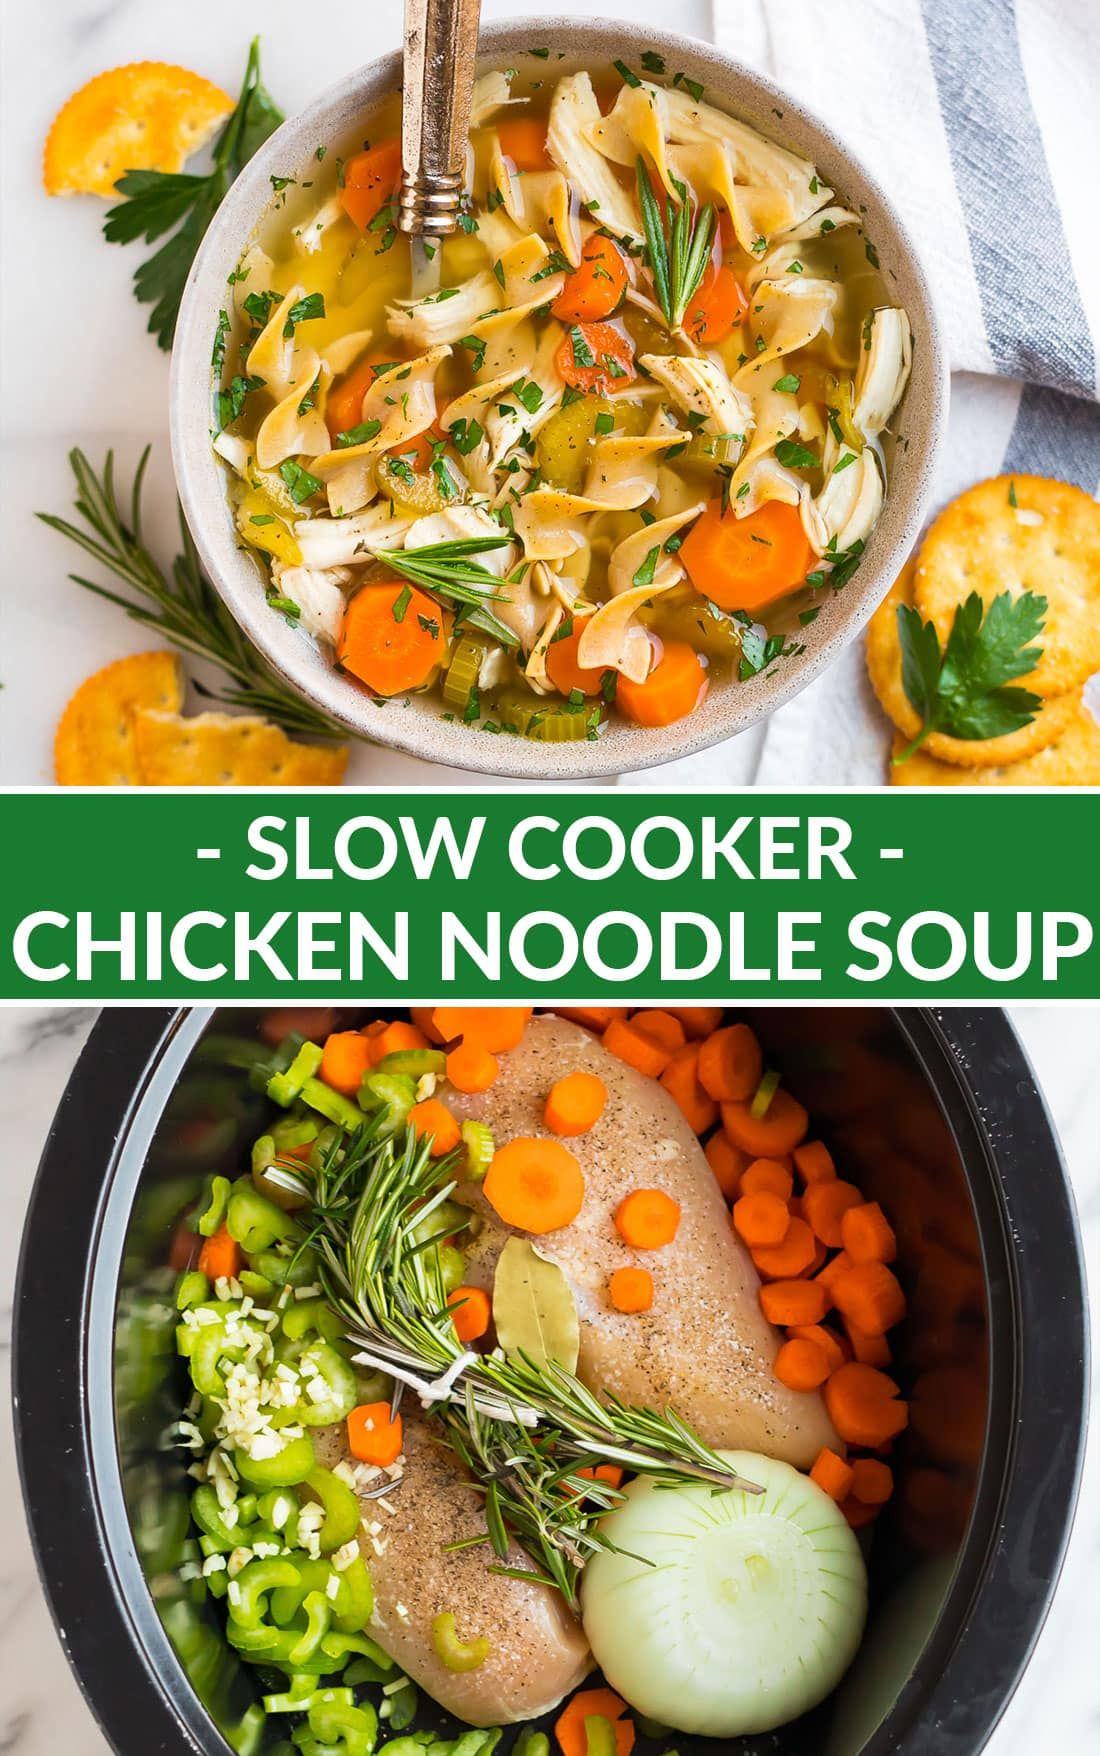 An Easy Healthy Recipe For The Best Crock Pot Chicken Noodle Soup From Scra Slow Cooker Chicken Noodle Soup Chicken Noodle Soup Crock Pot Vegetarian Crockpot